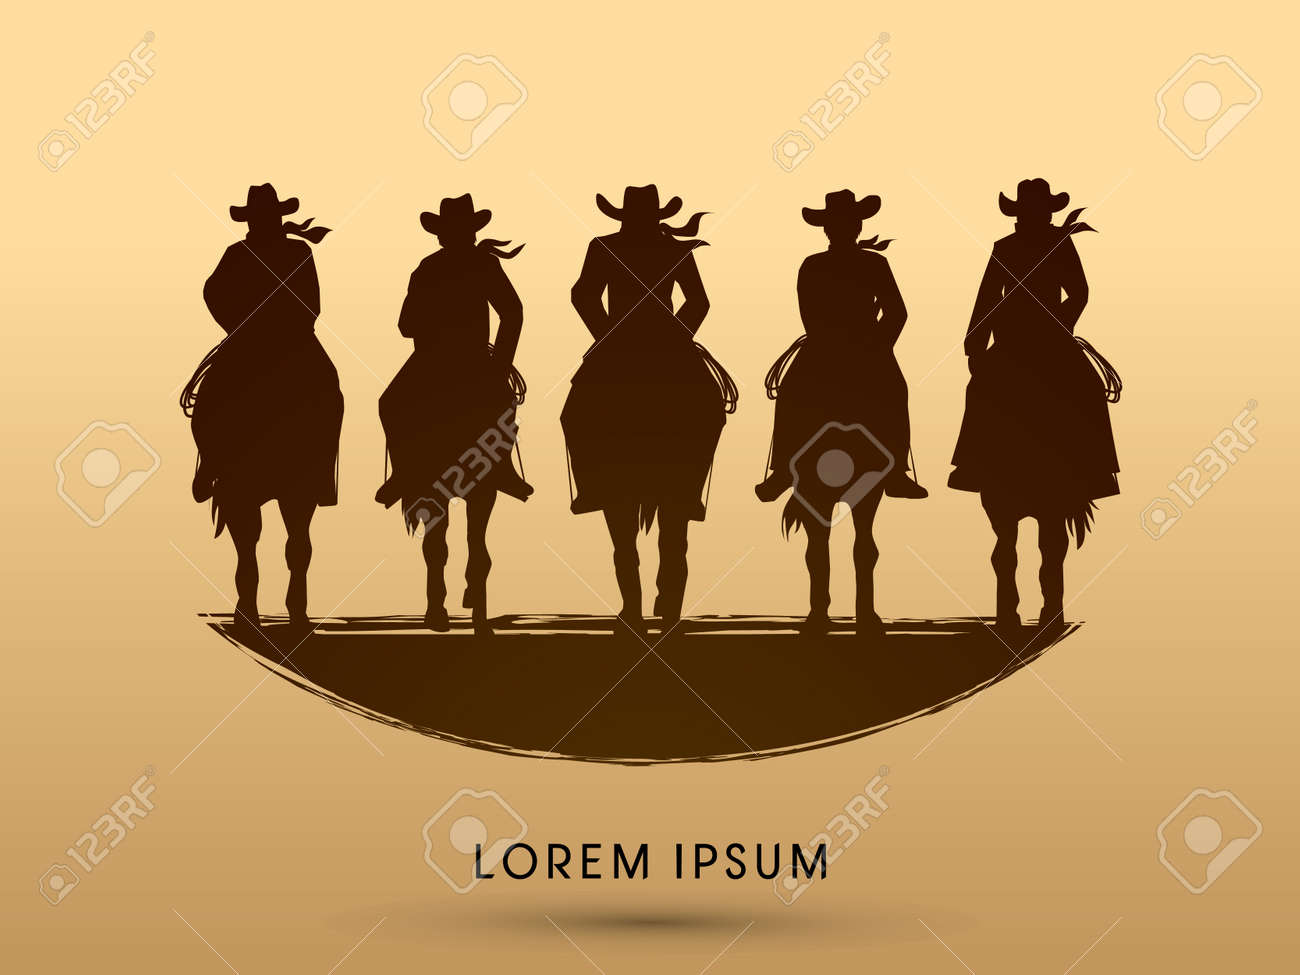 Silhouette, Cowboy Gangs on horse, graphic vector - 49477368